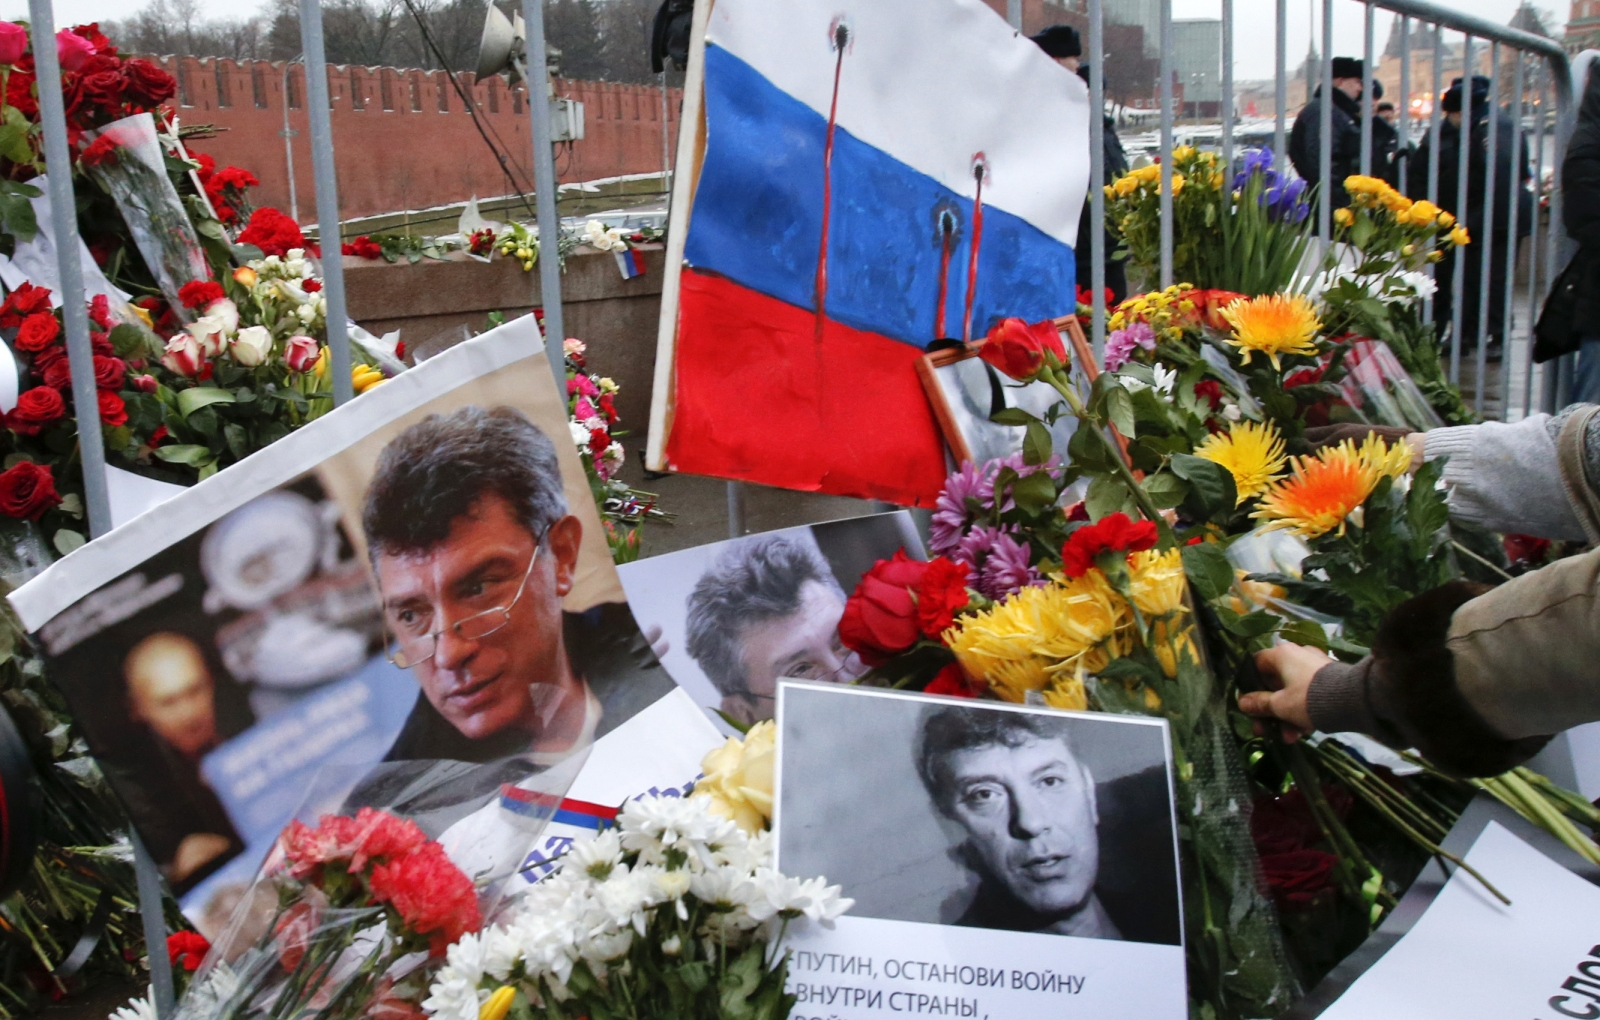 Tribute to Boris Nemtsov